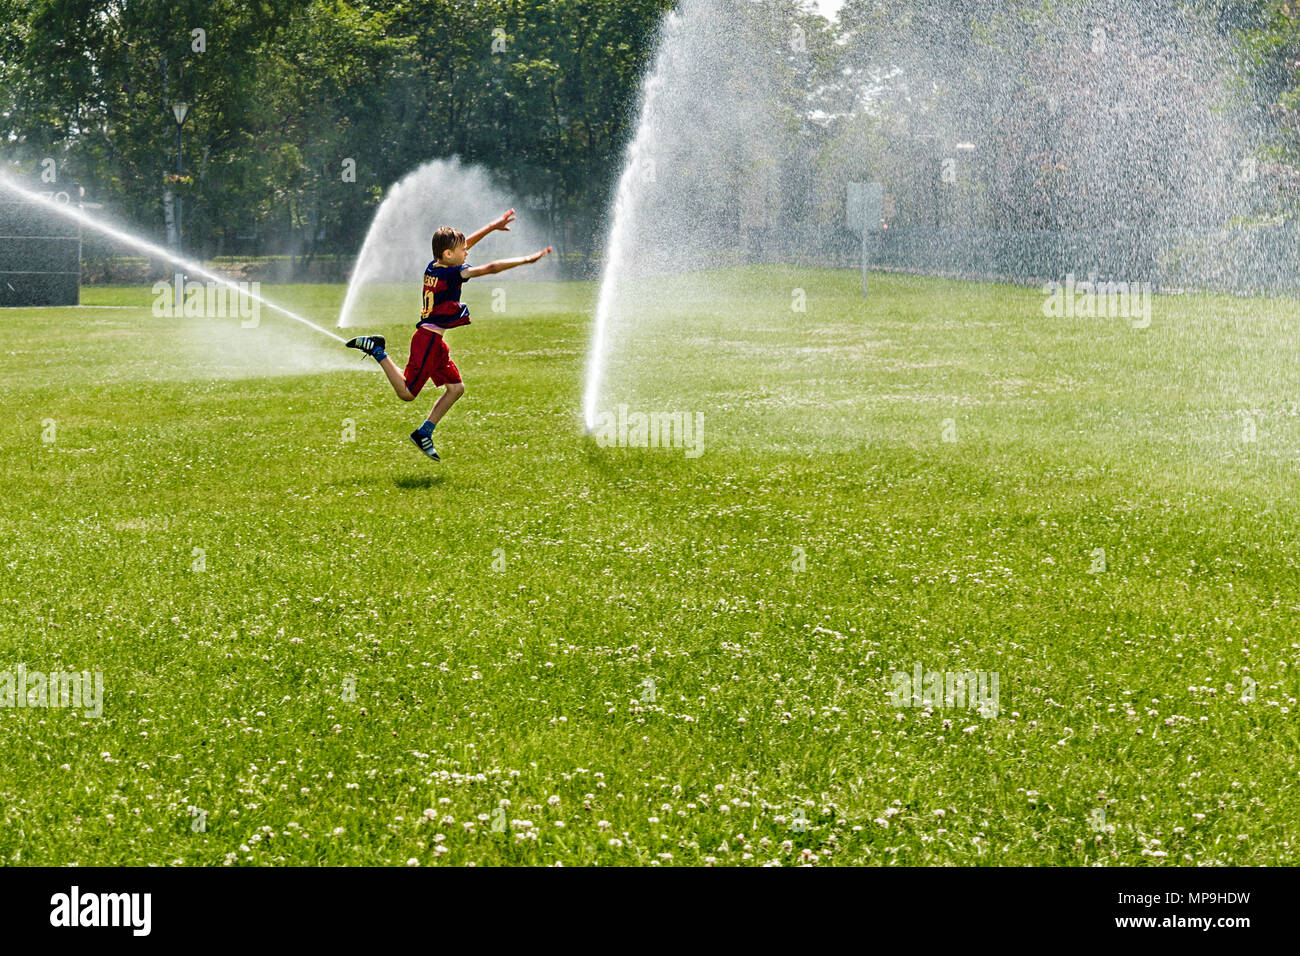 A little boy in a FC Barcelona football outfit jumping towards a cascade of water in the public park in Gliwice, Silesian Upland, Poland. - Stock Image